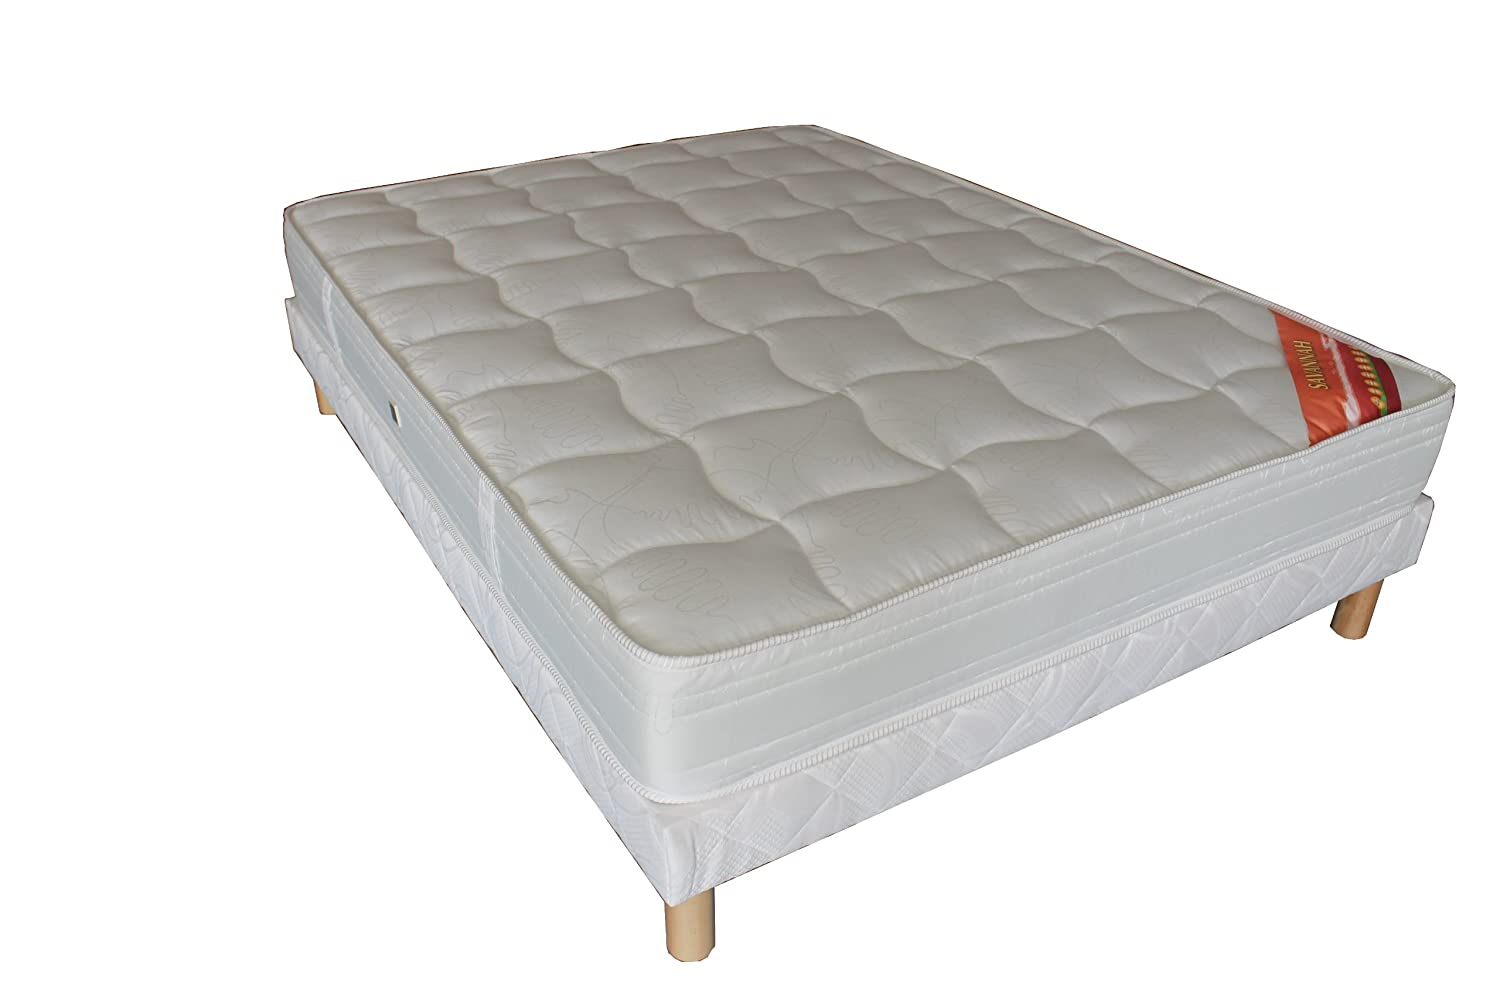 sommier merinos 160x200 matelas x cm sommier xx cm merinos friendly with sommier merinos. Black Bedroom Furniture Sets. Home Design Ideas